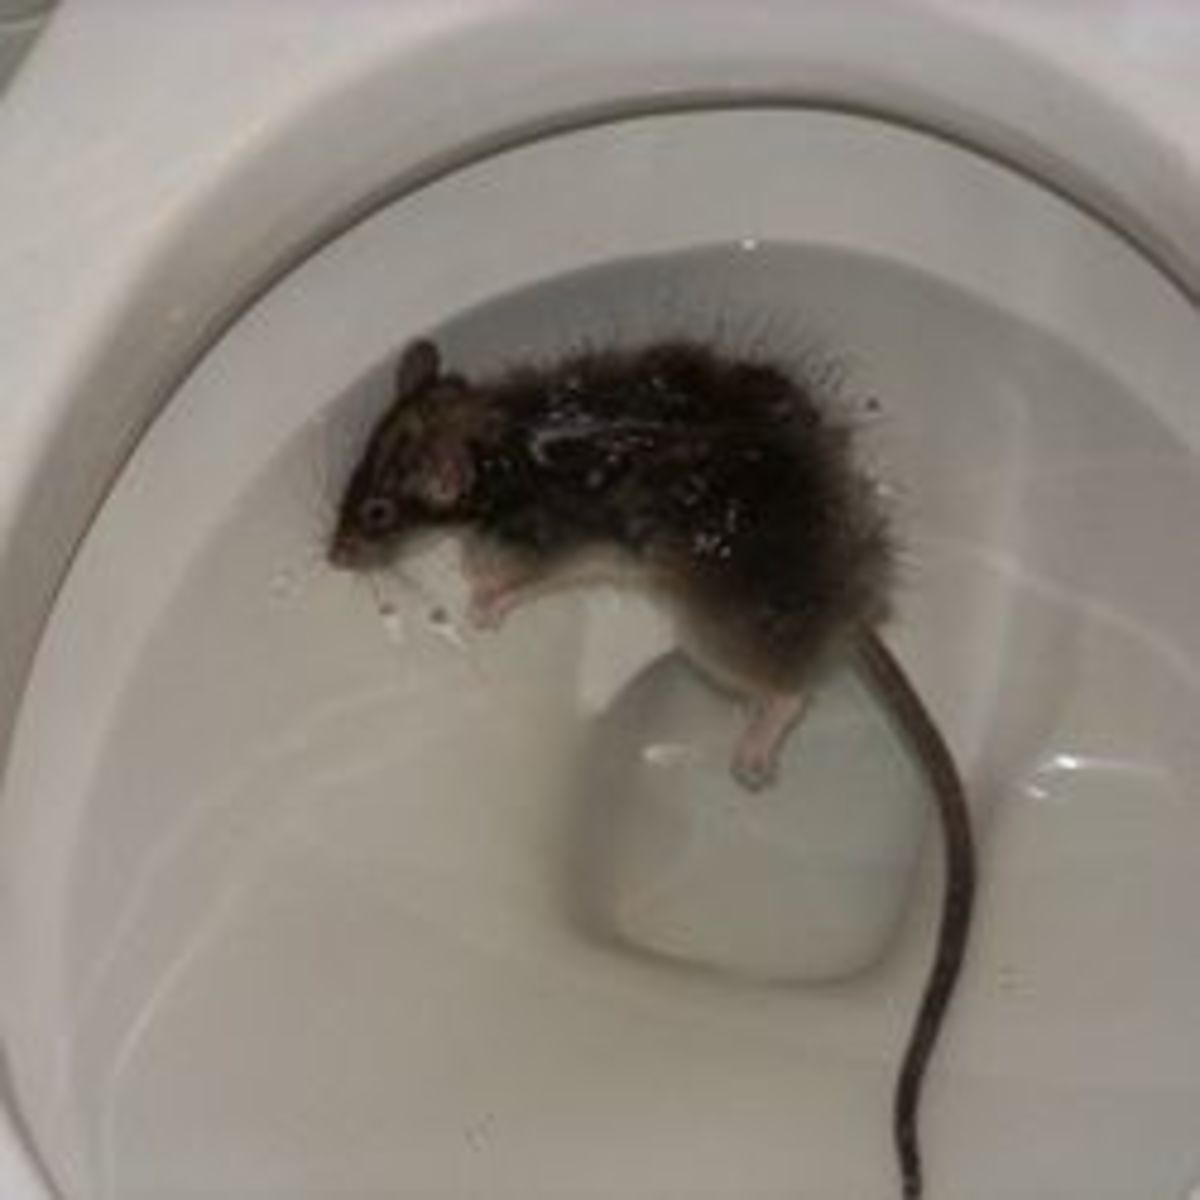 Dead rat in the toilet